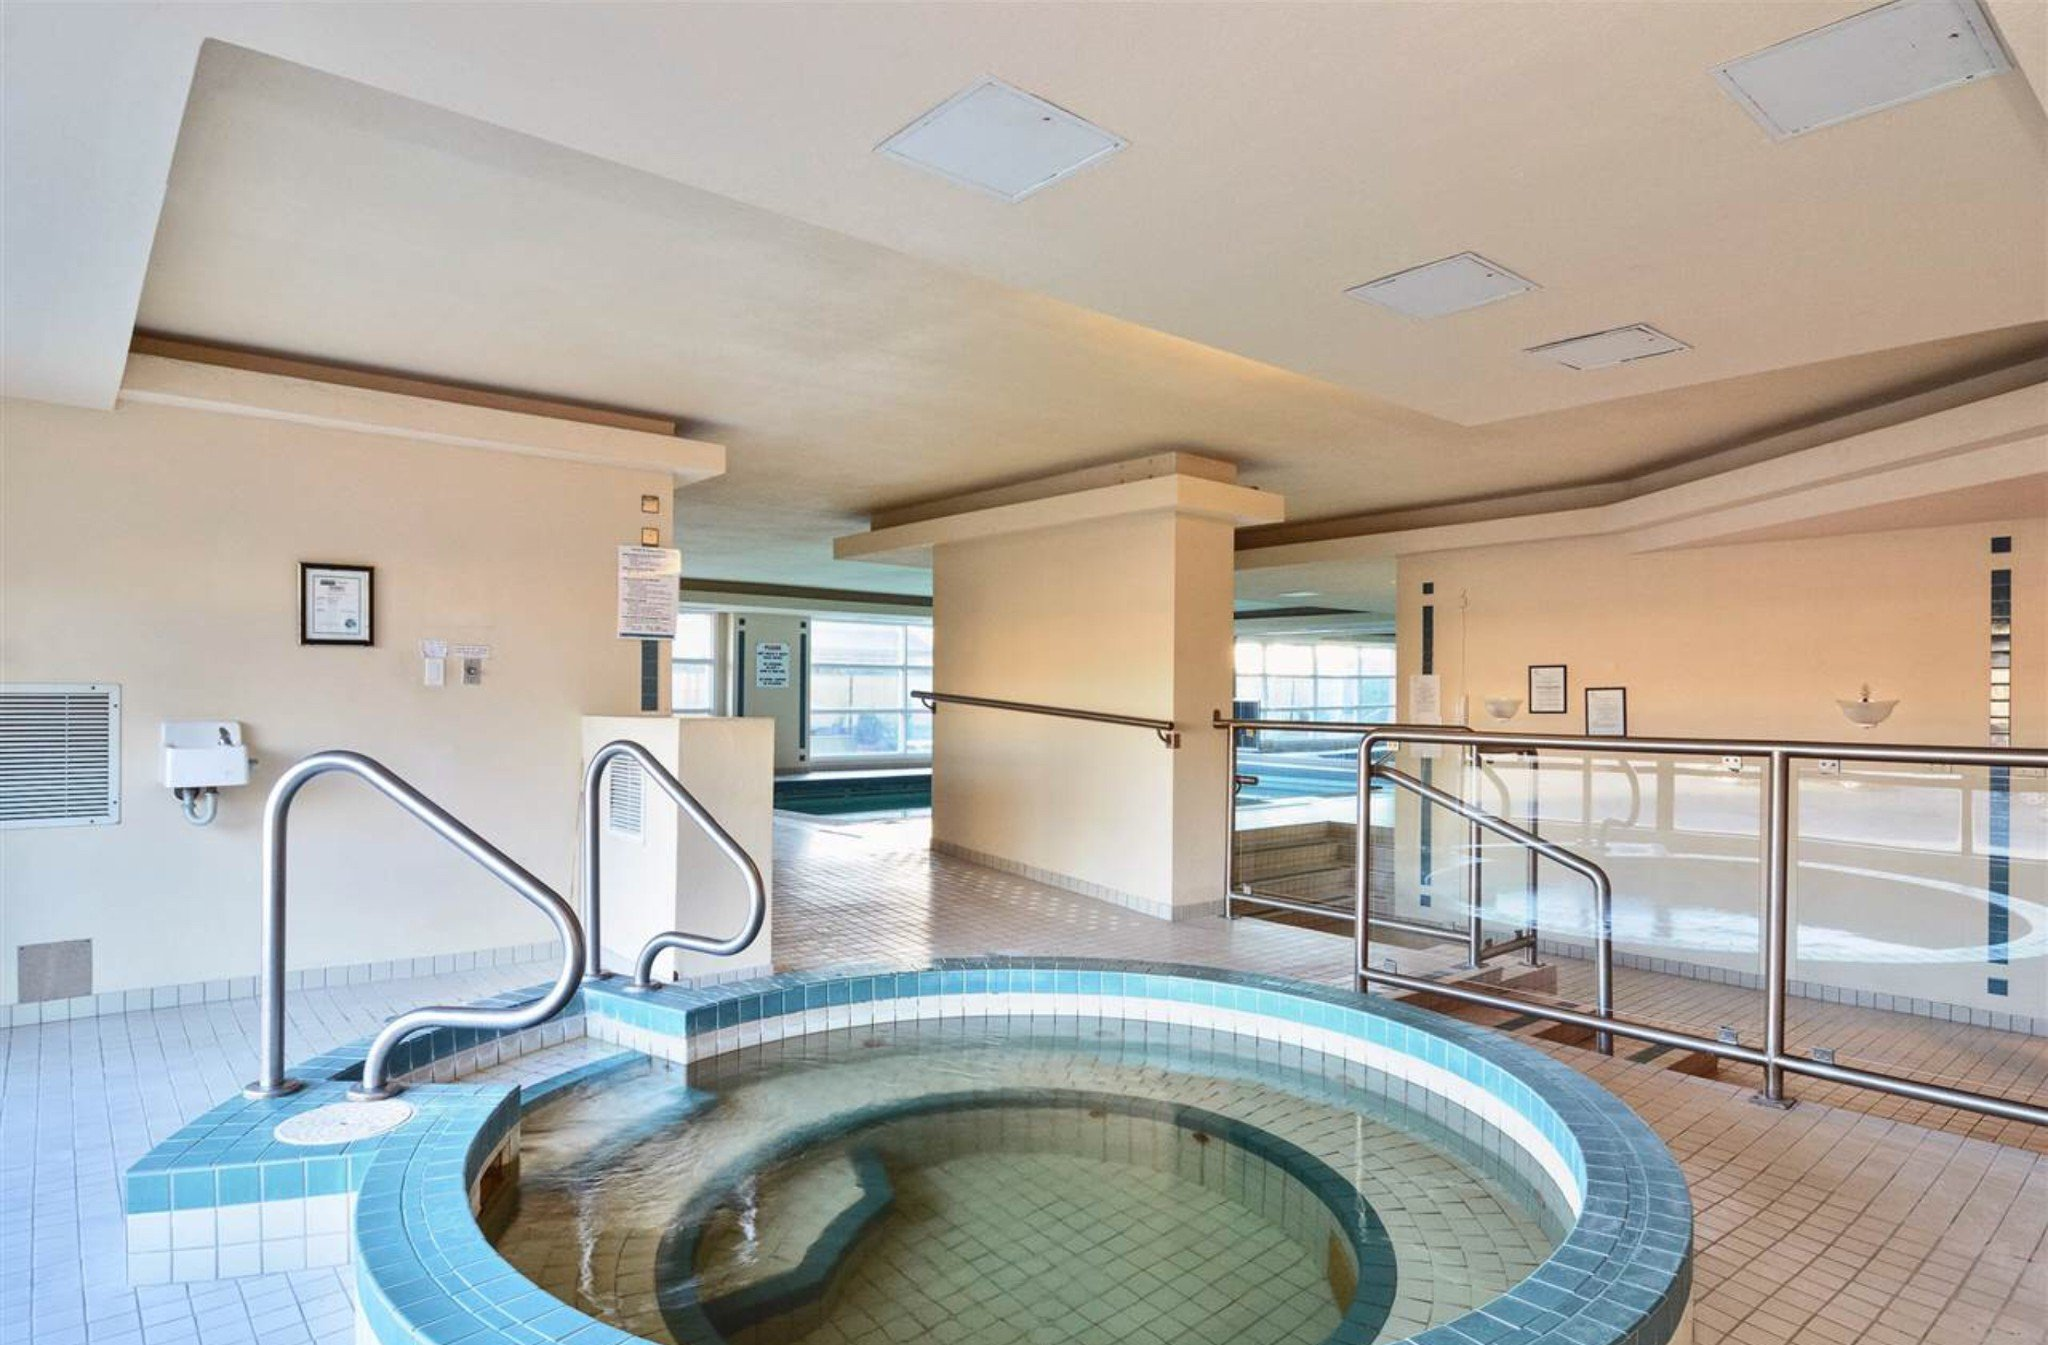 Photo 15: Photos: 405, 15111 Russell Avenue: White Rock Condo for sale (South Surrey White Rock)  : MLS®# R2133728